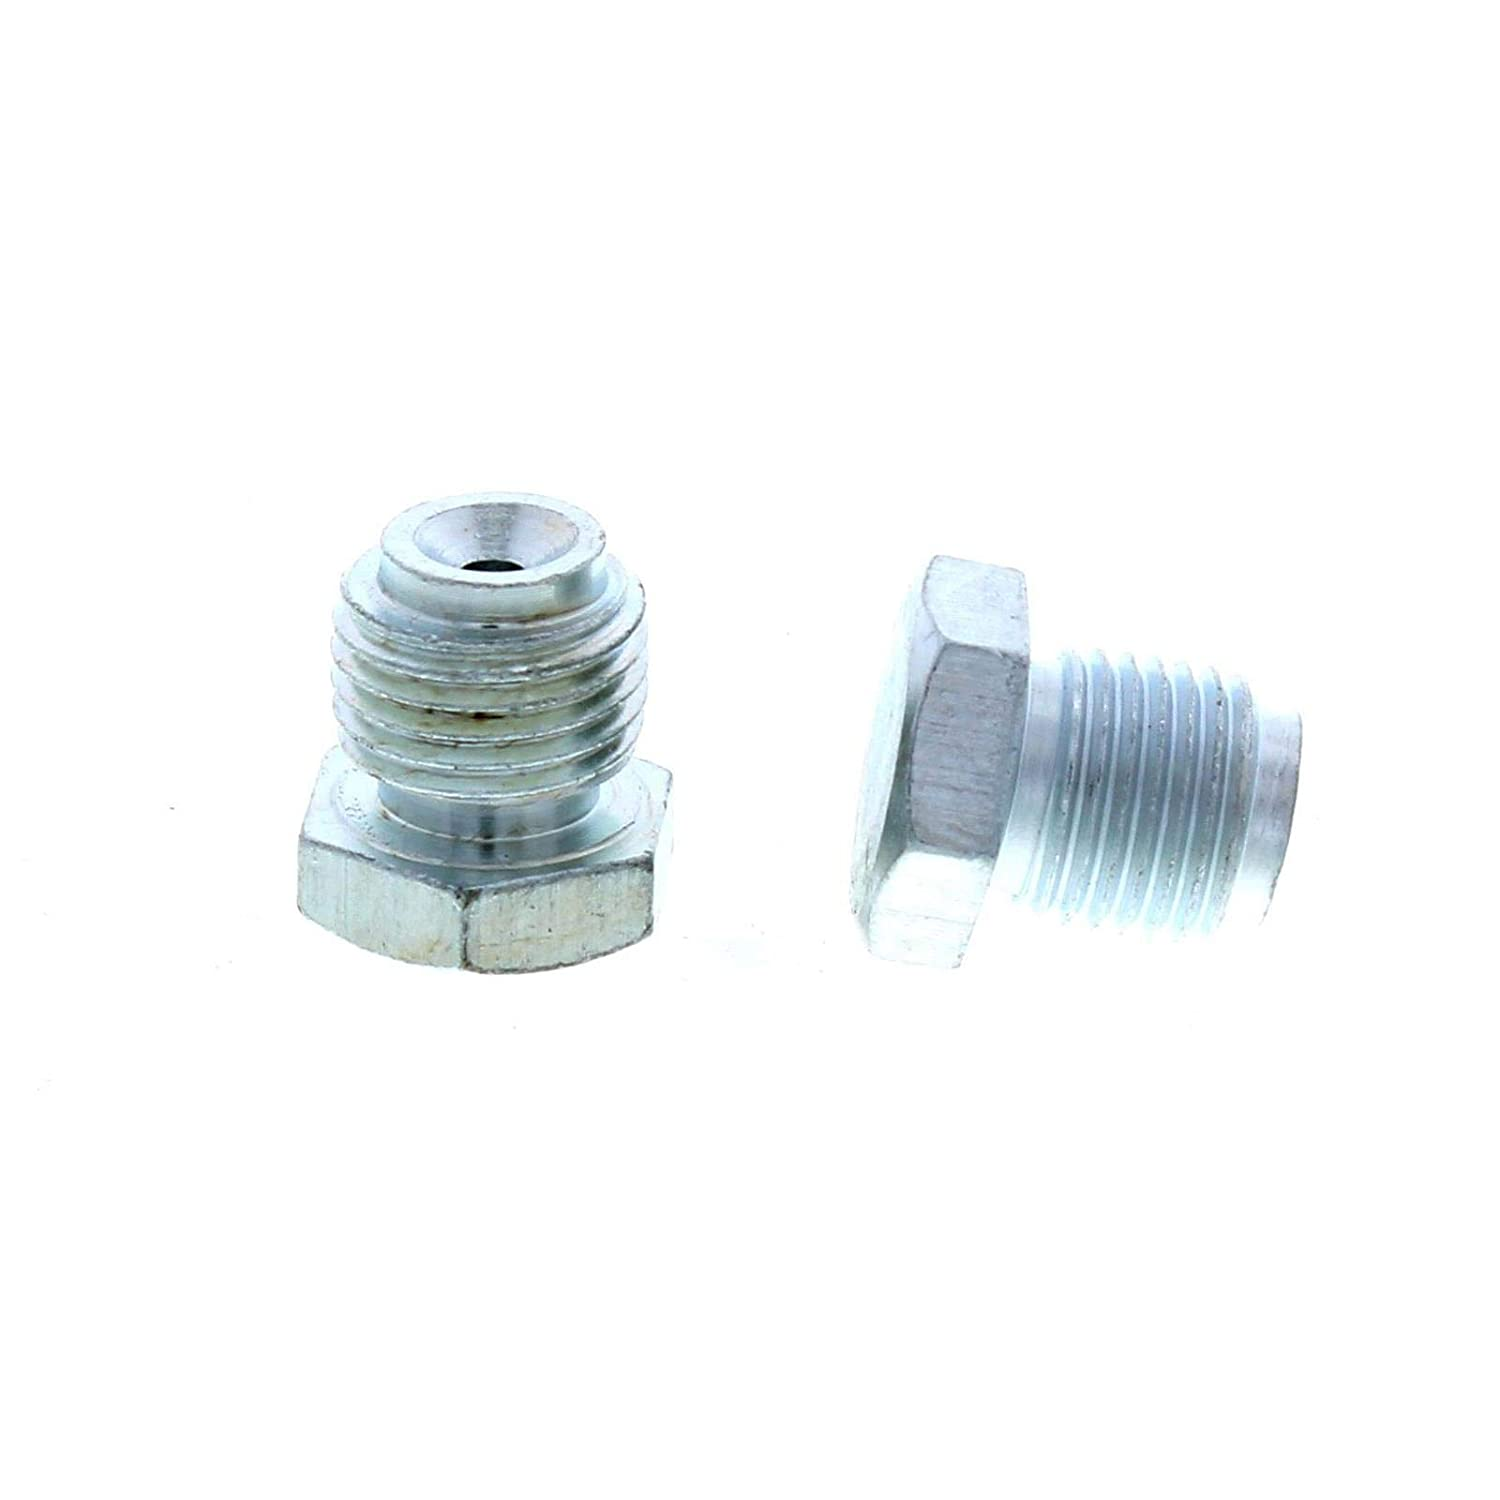 Master Cylinder Plugs, 1/2'-20 & 9/16'-18, Zinc Finish 1/2-20 & 9/16-18 Speedway Motors